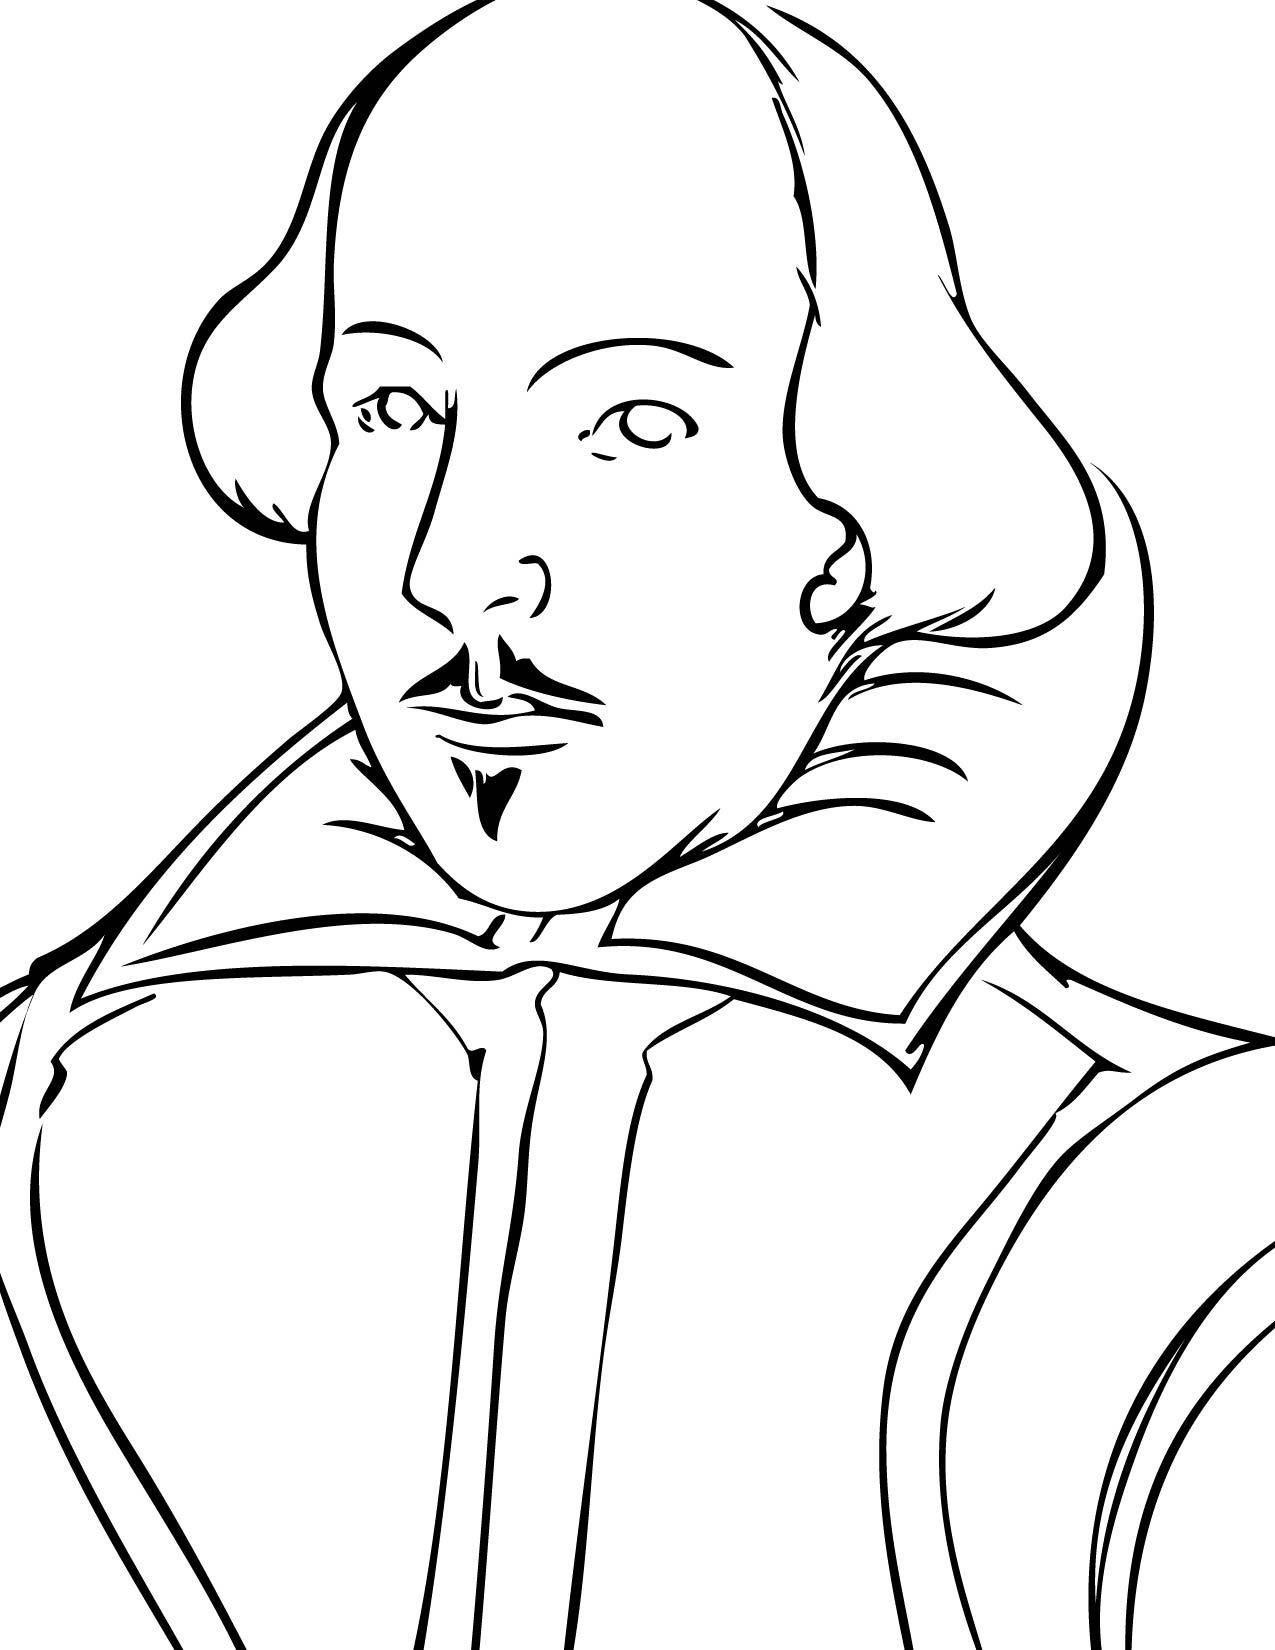 good coloring page of shakespeare u0027s face if you have to do a